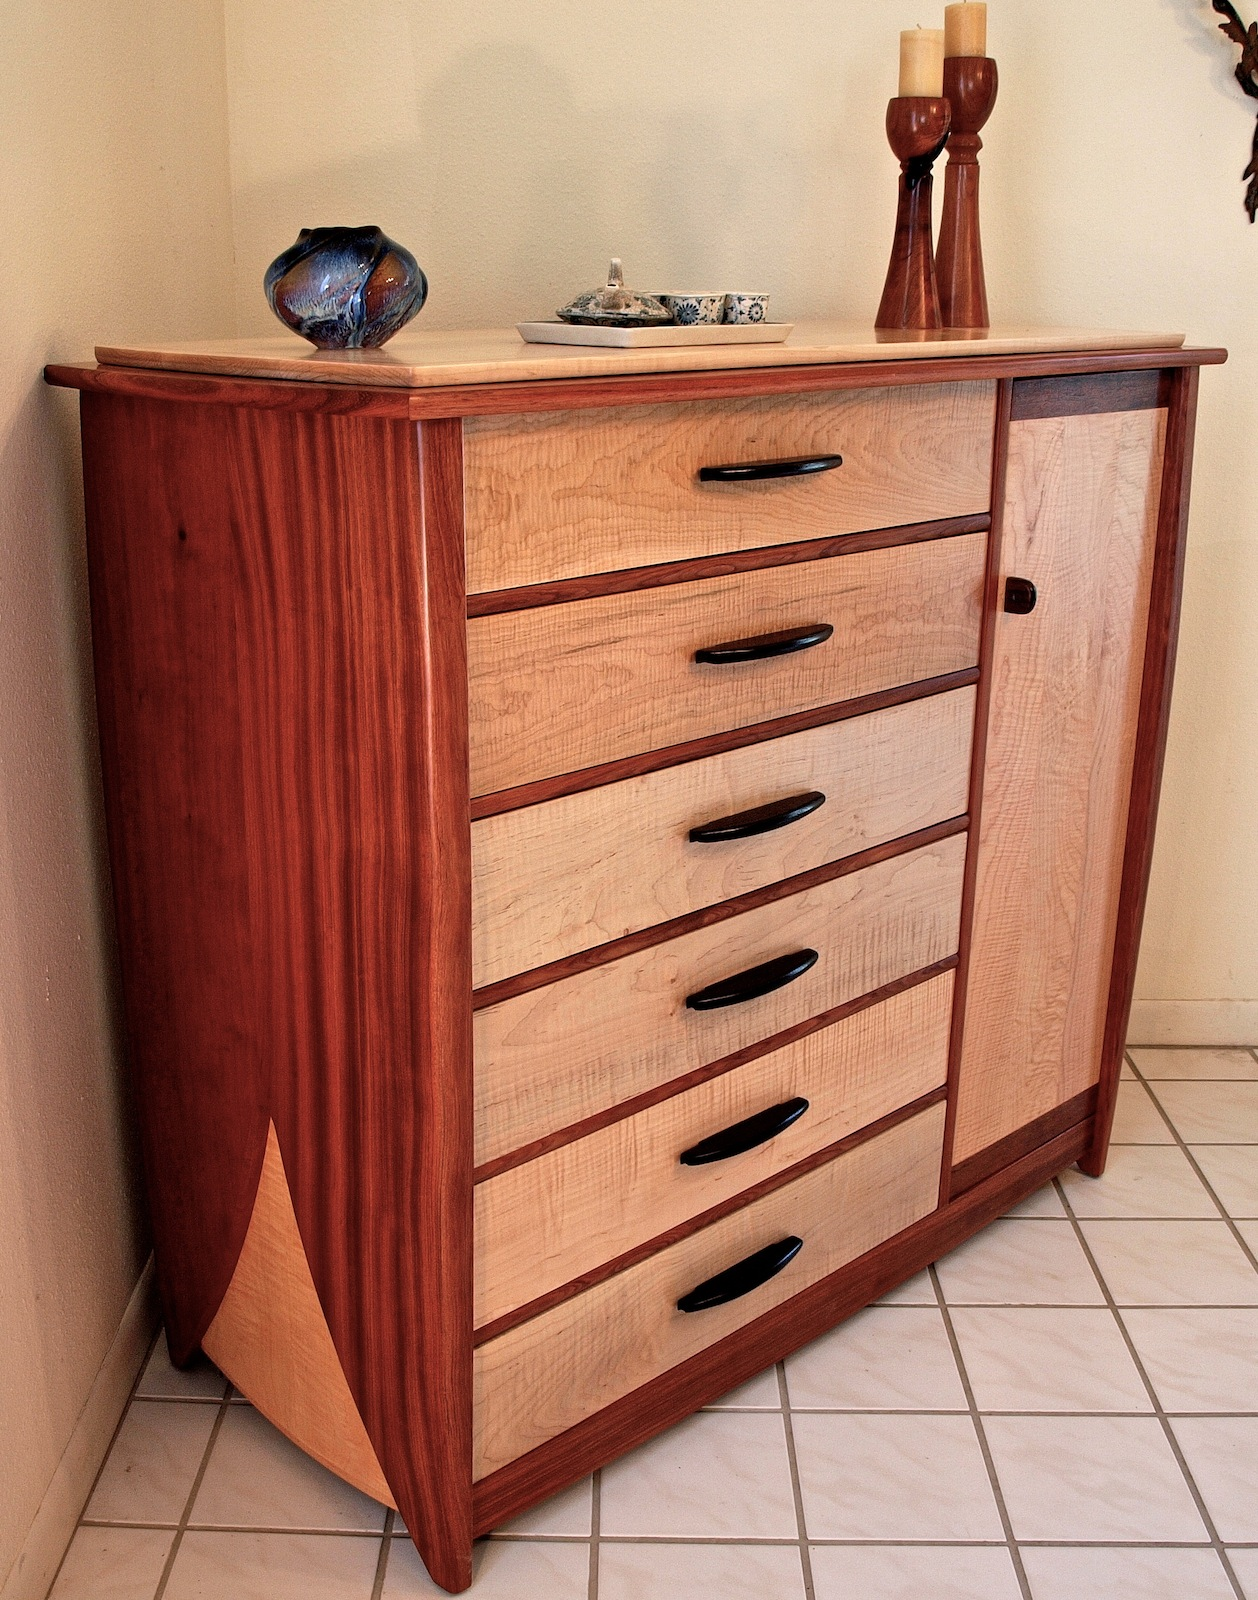 #782B20  Dresser In Bubinga & Curly Maple – Louis Fry / A Furniture Maker's with 1258x1600 px of Recommended Maple Wood Dresser 16001258 save image @ avoidforclosure.info